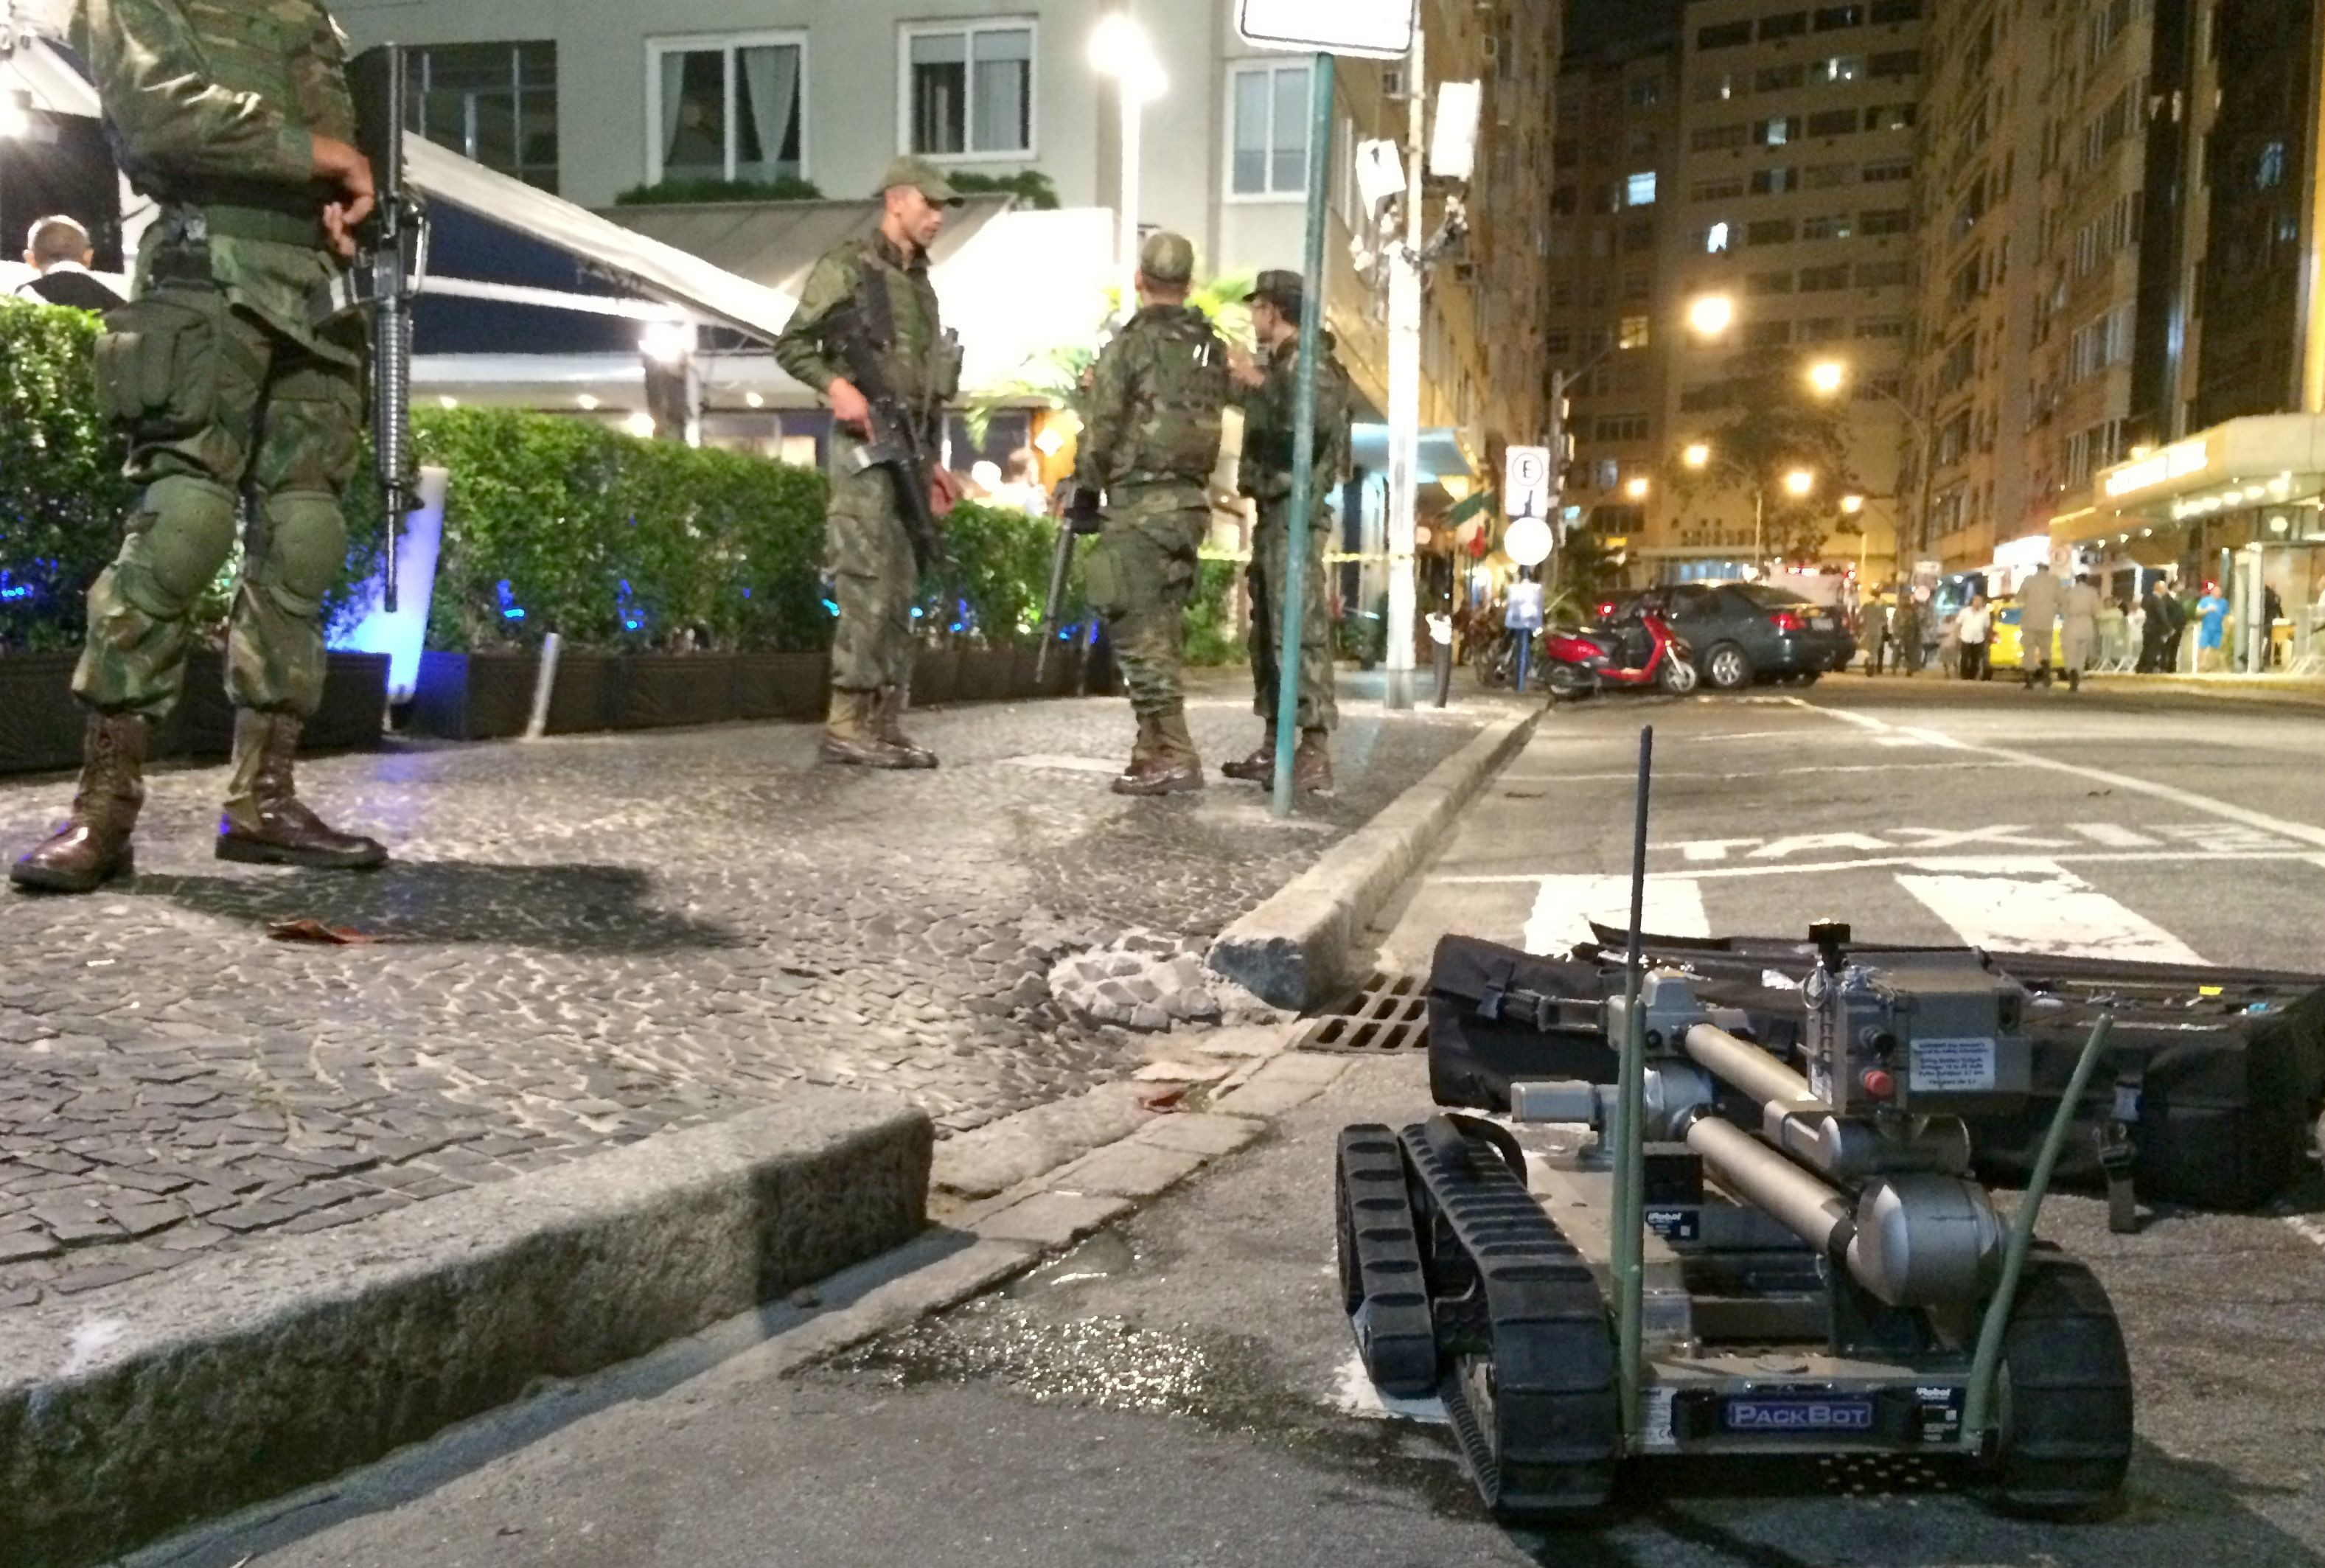 An image taken on a mobile phone shows members of Brazil's armed forces stand on duty as bomb disposal equipment is packed away following a controlled explosion in the Copacabana district of Rio de Janeiro on August 9, 2016. A suspect package was blown up on Tuesday near the luxury beachfront Copacabana Palace hotel. Earlier in the day a bus carrying Rio Olympics journalists came under attack and police were investigating whether bullets were fired from the notorious City of God favela. / AFP / Leon NEAL        (Photo credit should read LEON NEAL/AFP/Getty Images)